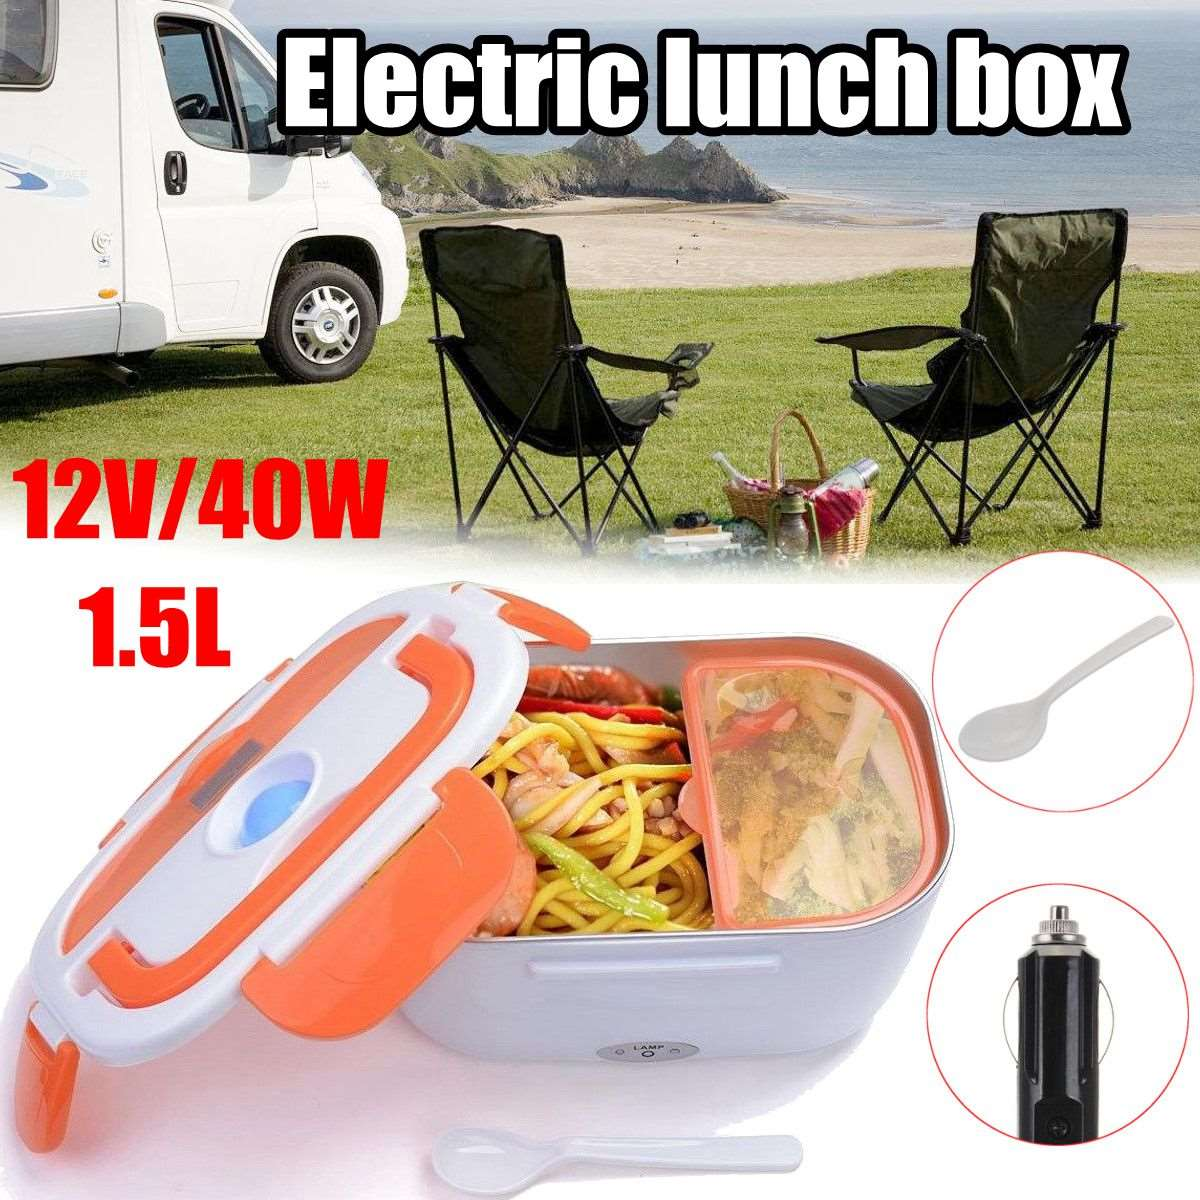 12V 1.5L Portable Car Truck Electric Heating Lunch Box Food Warm Heater Storage Container striped dot portable lunch bag thermal insulated cold keep food safe warm lunch bags for girls women 121